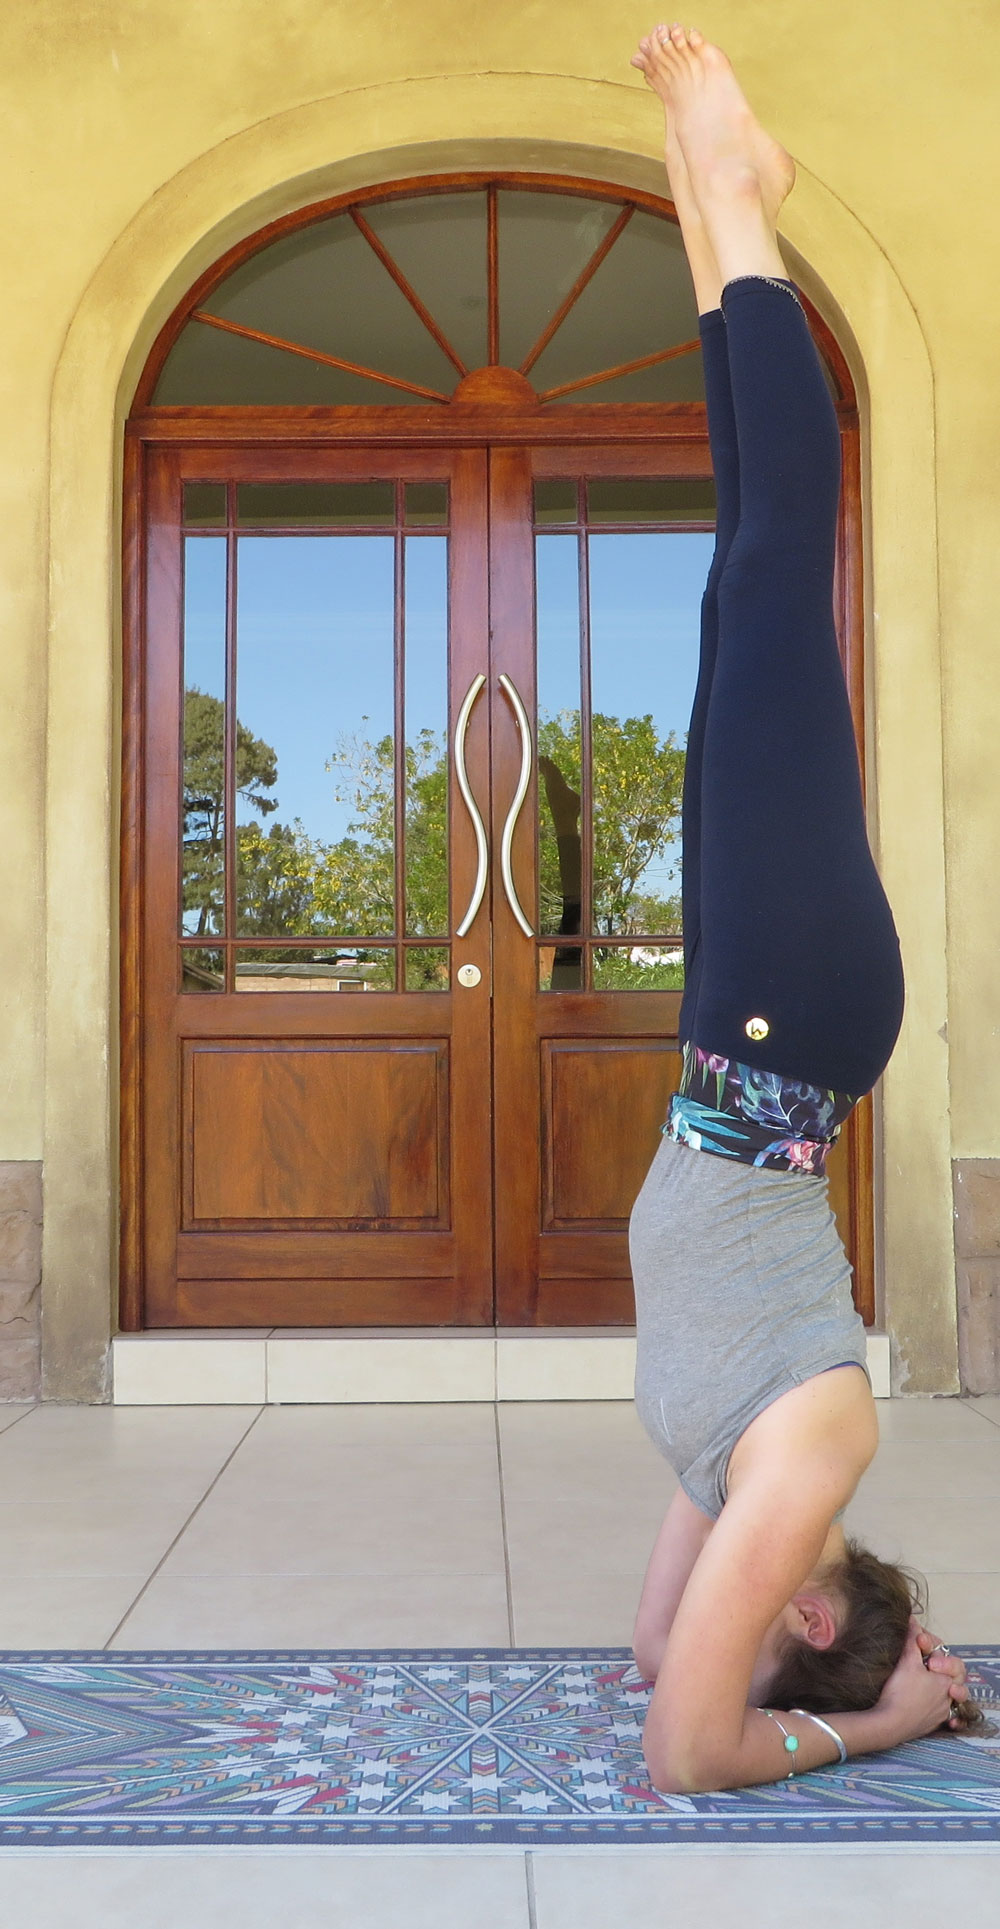 Salamba sirasana - supported headstand pose and the 'king of asanas'. I also use headstands as a way to revive concentration/focus during lengthy work periods.